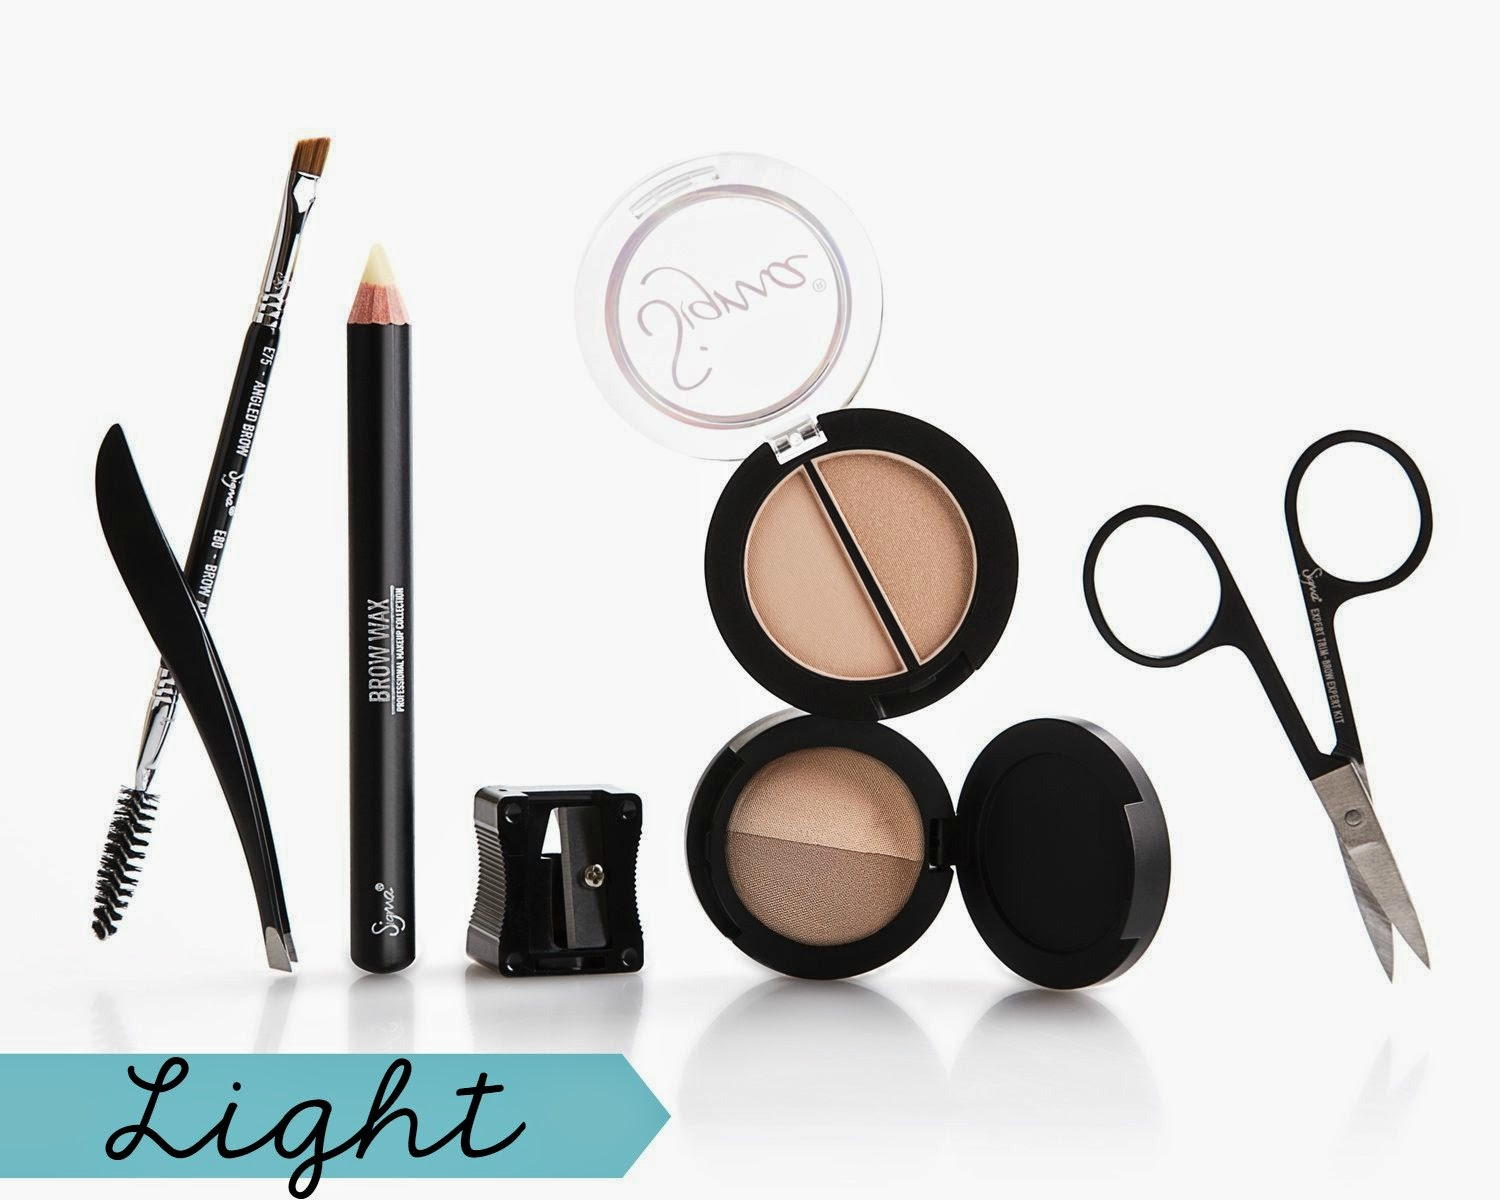 Sigma Brow Expert Kit in Light — A Modern Mrs.